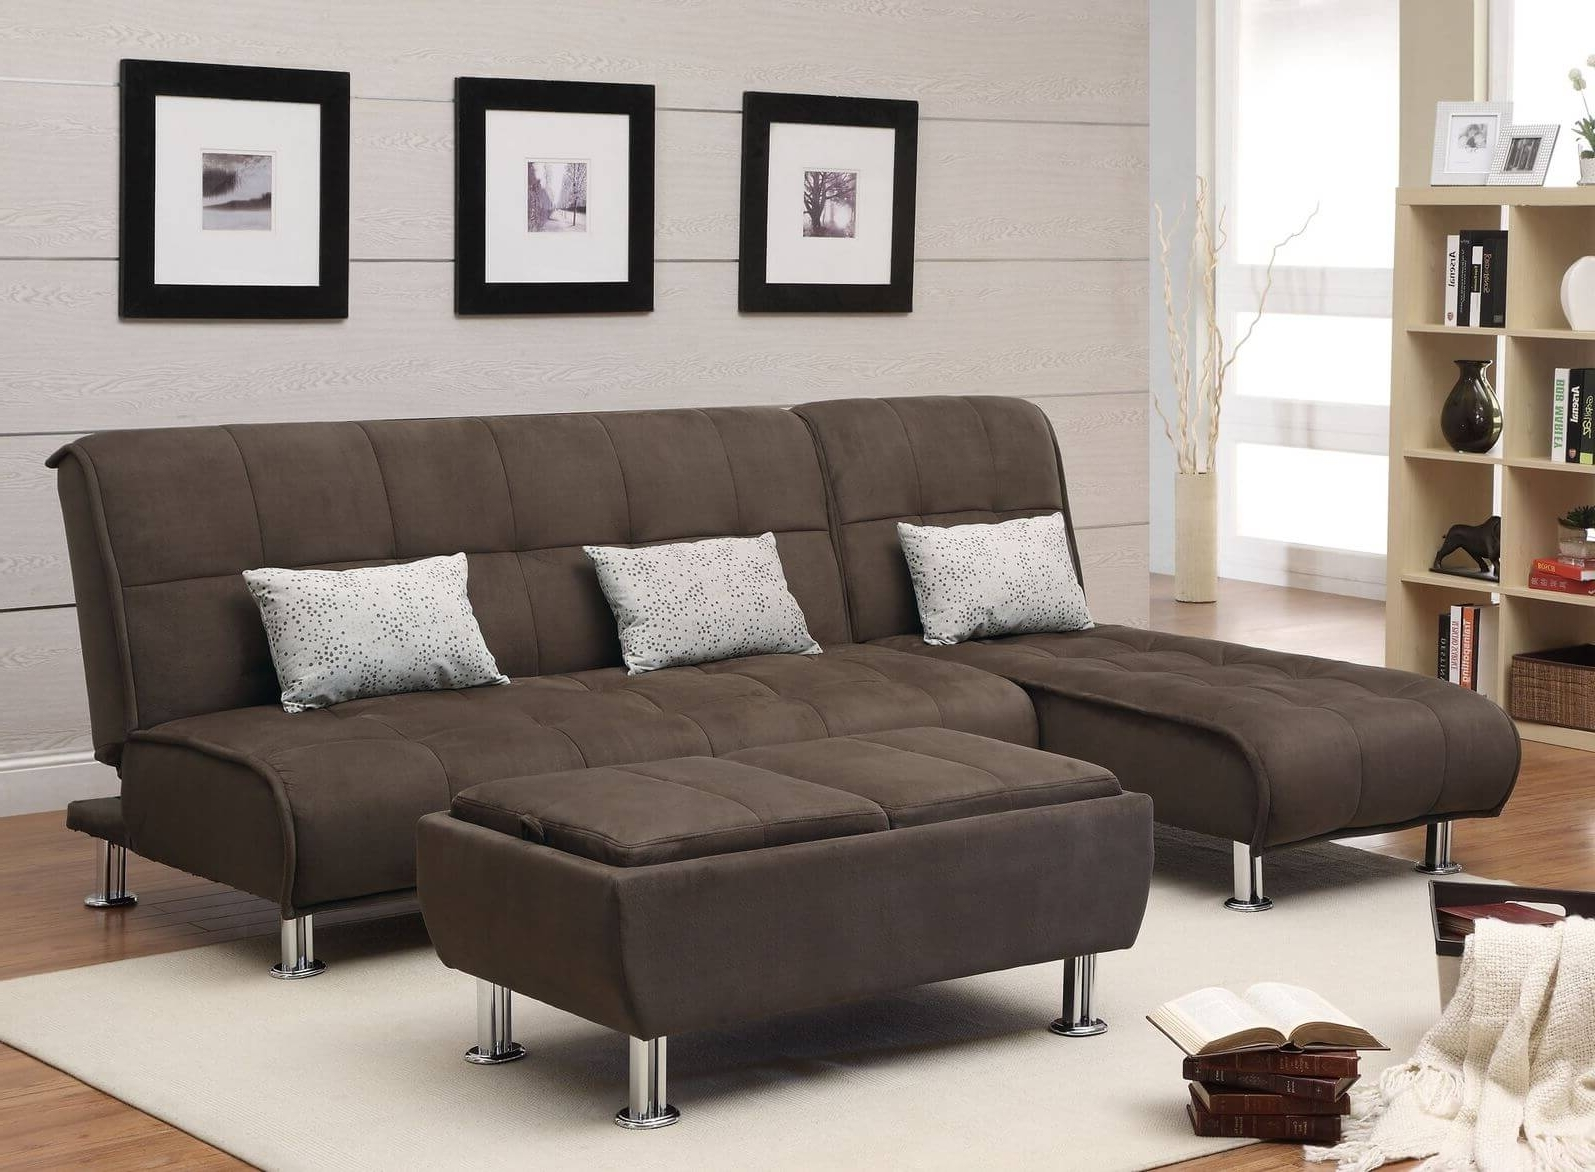 2019 Furniture : Ethan Allen Wood Sofa Chaise Lounge Furniture Indoor With Quad Cities Sectional Sofas (View 3 of 20)